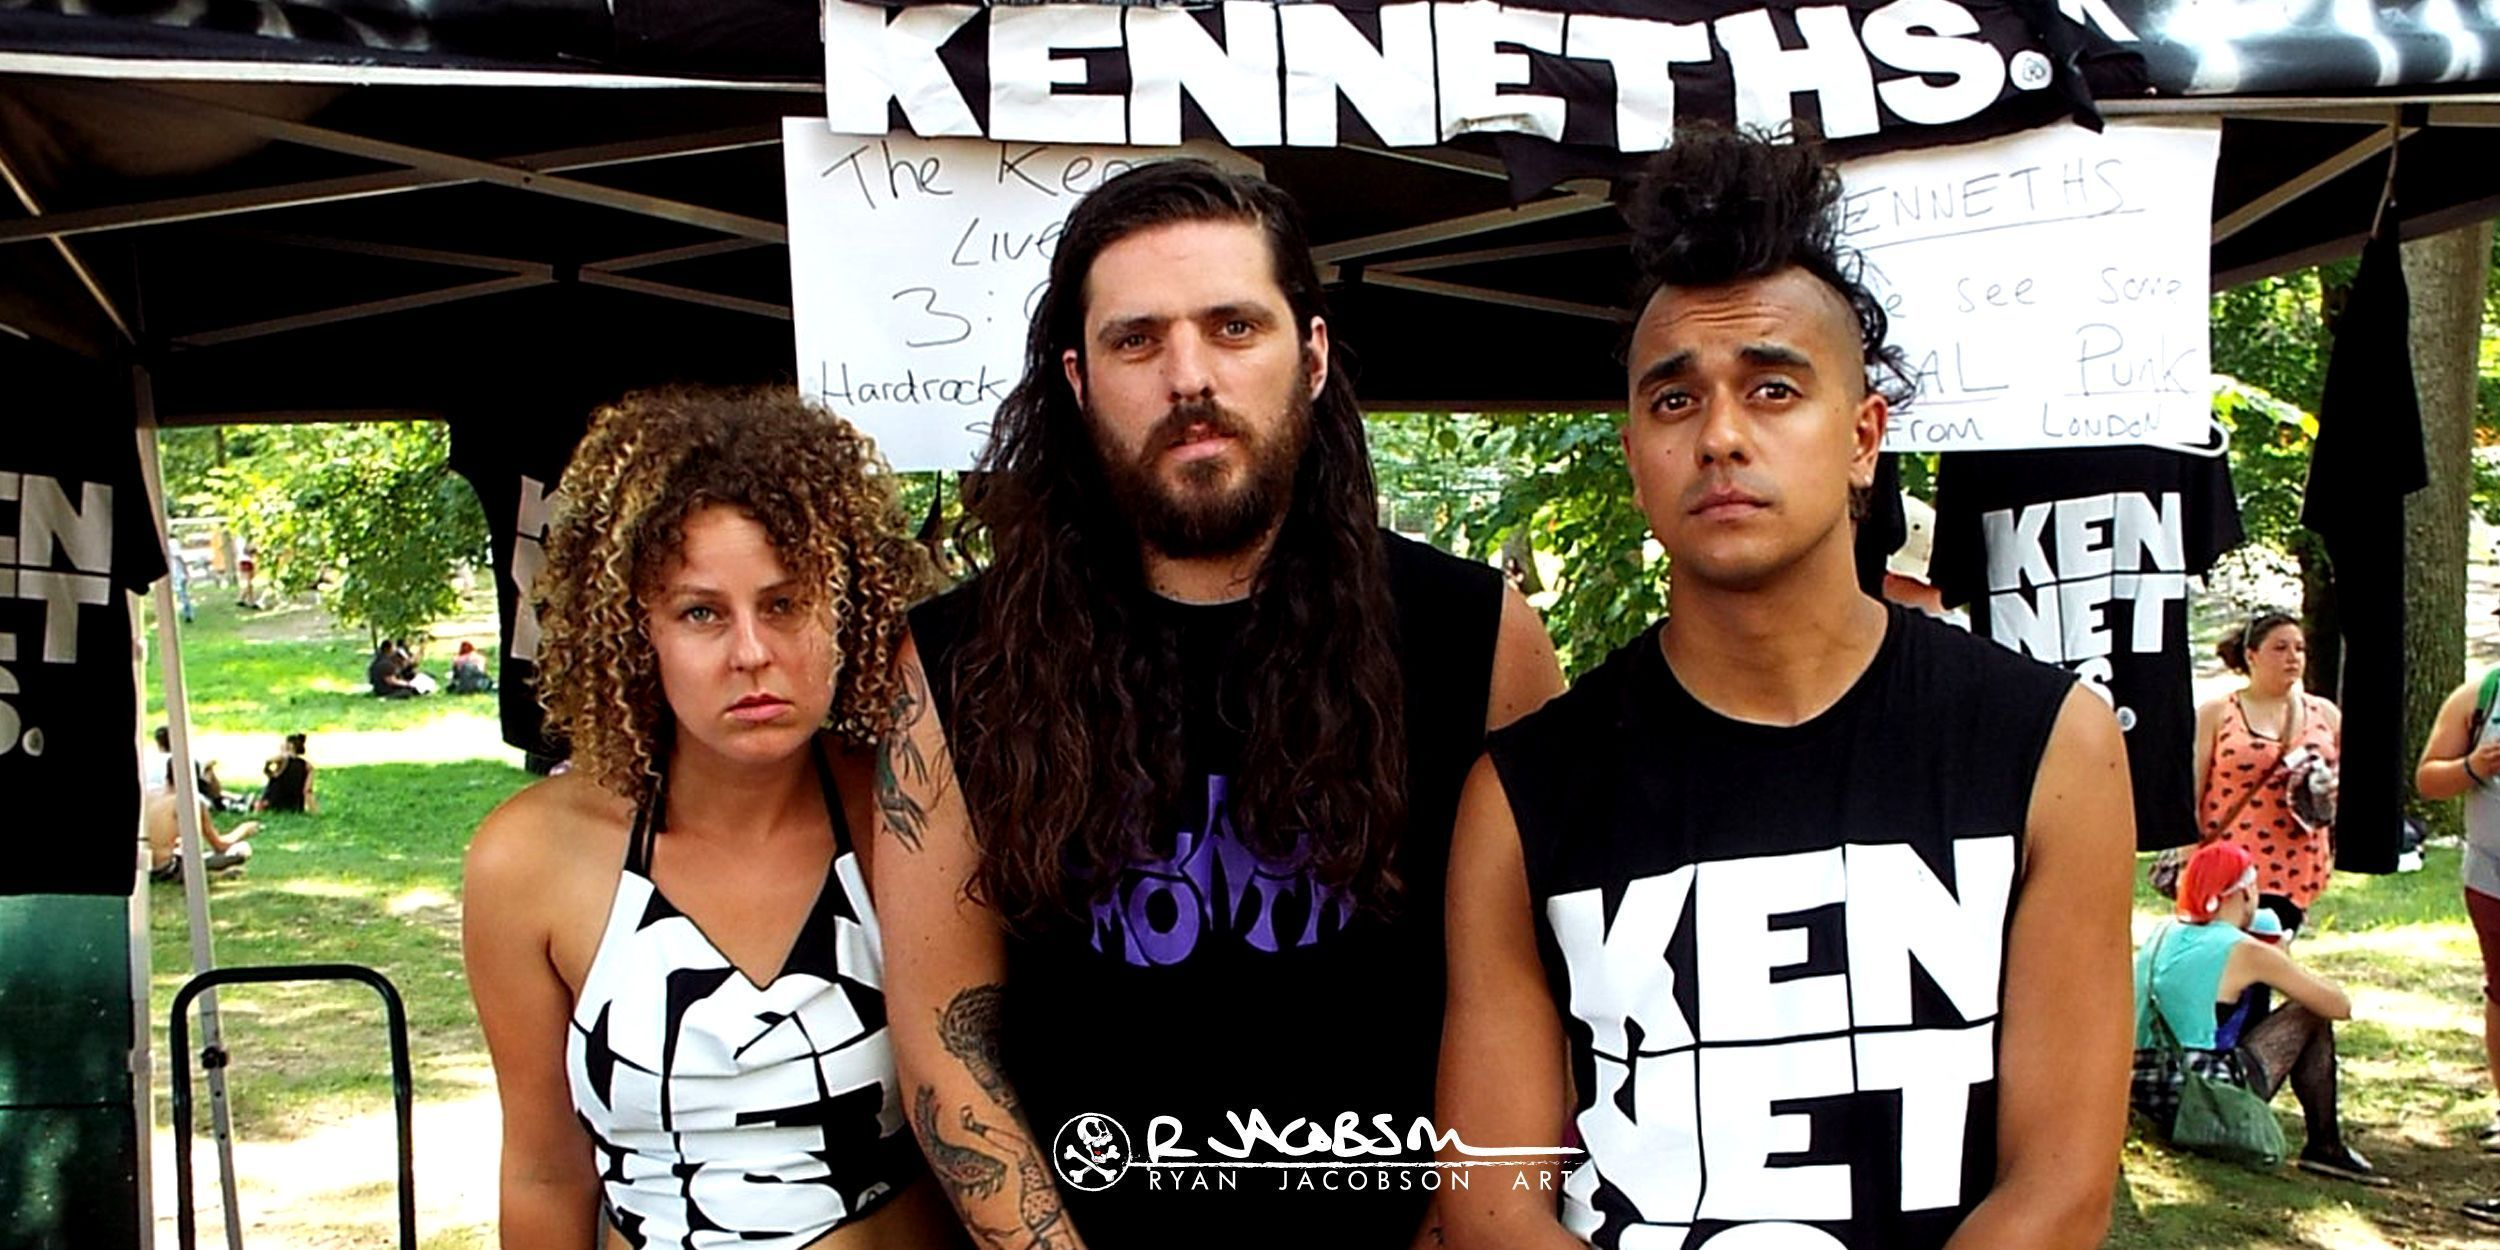 If You Have Been Missing The Ramones, You Need To Meet The Kenneths.